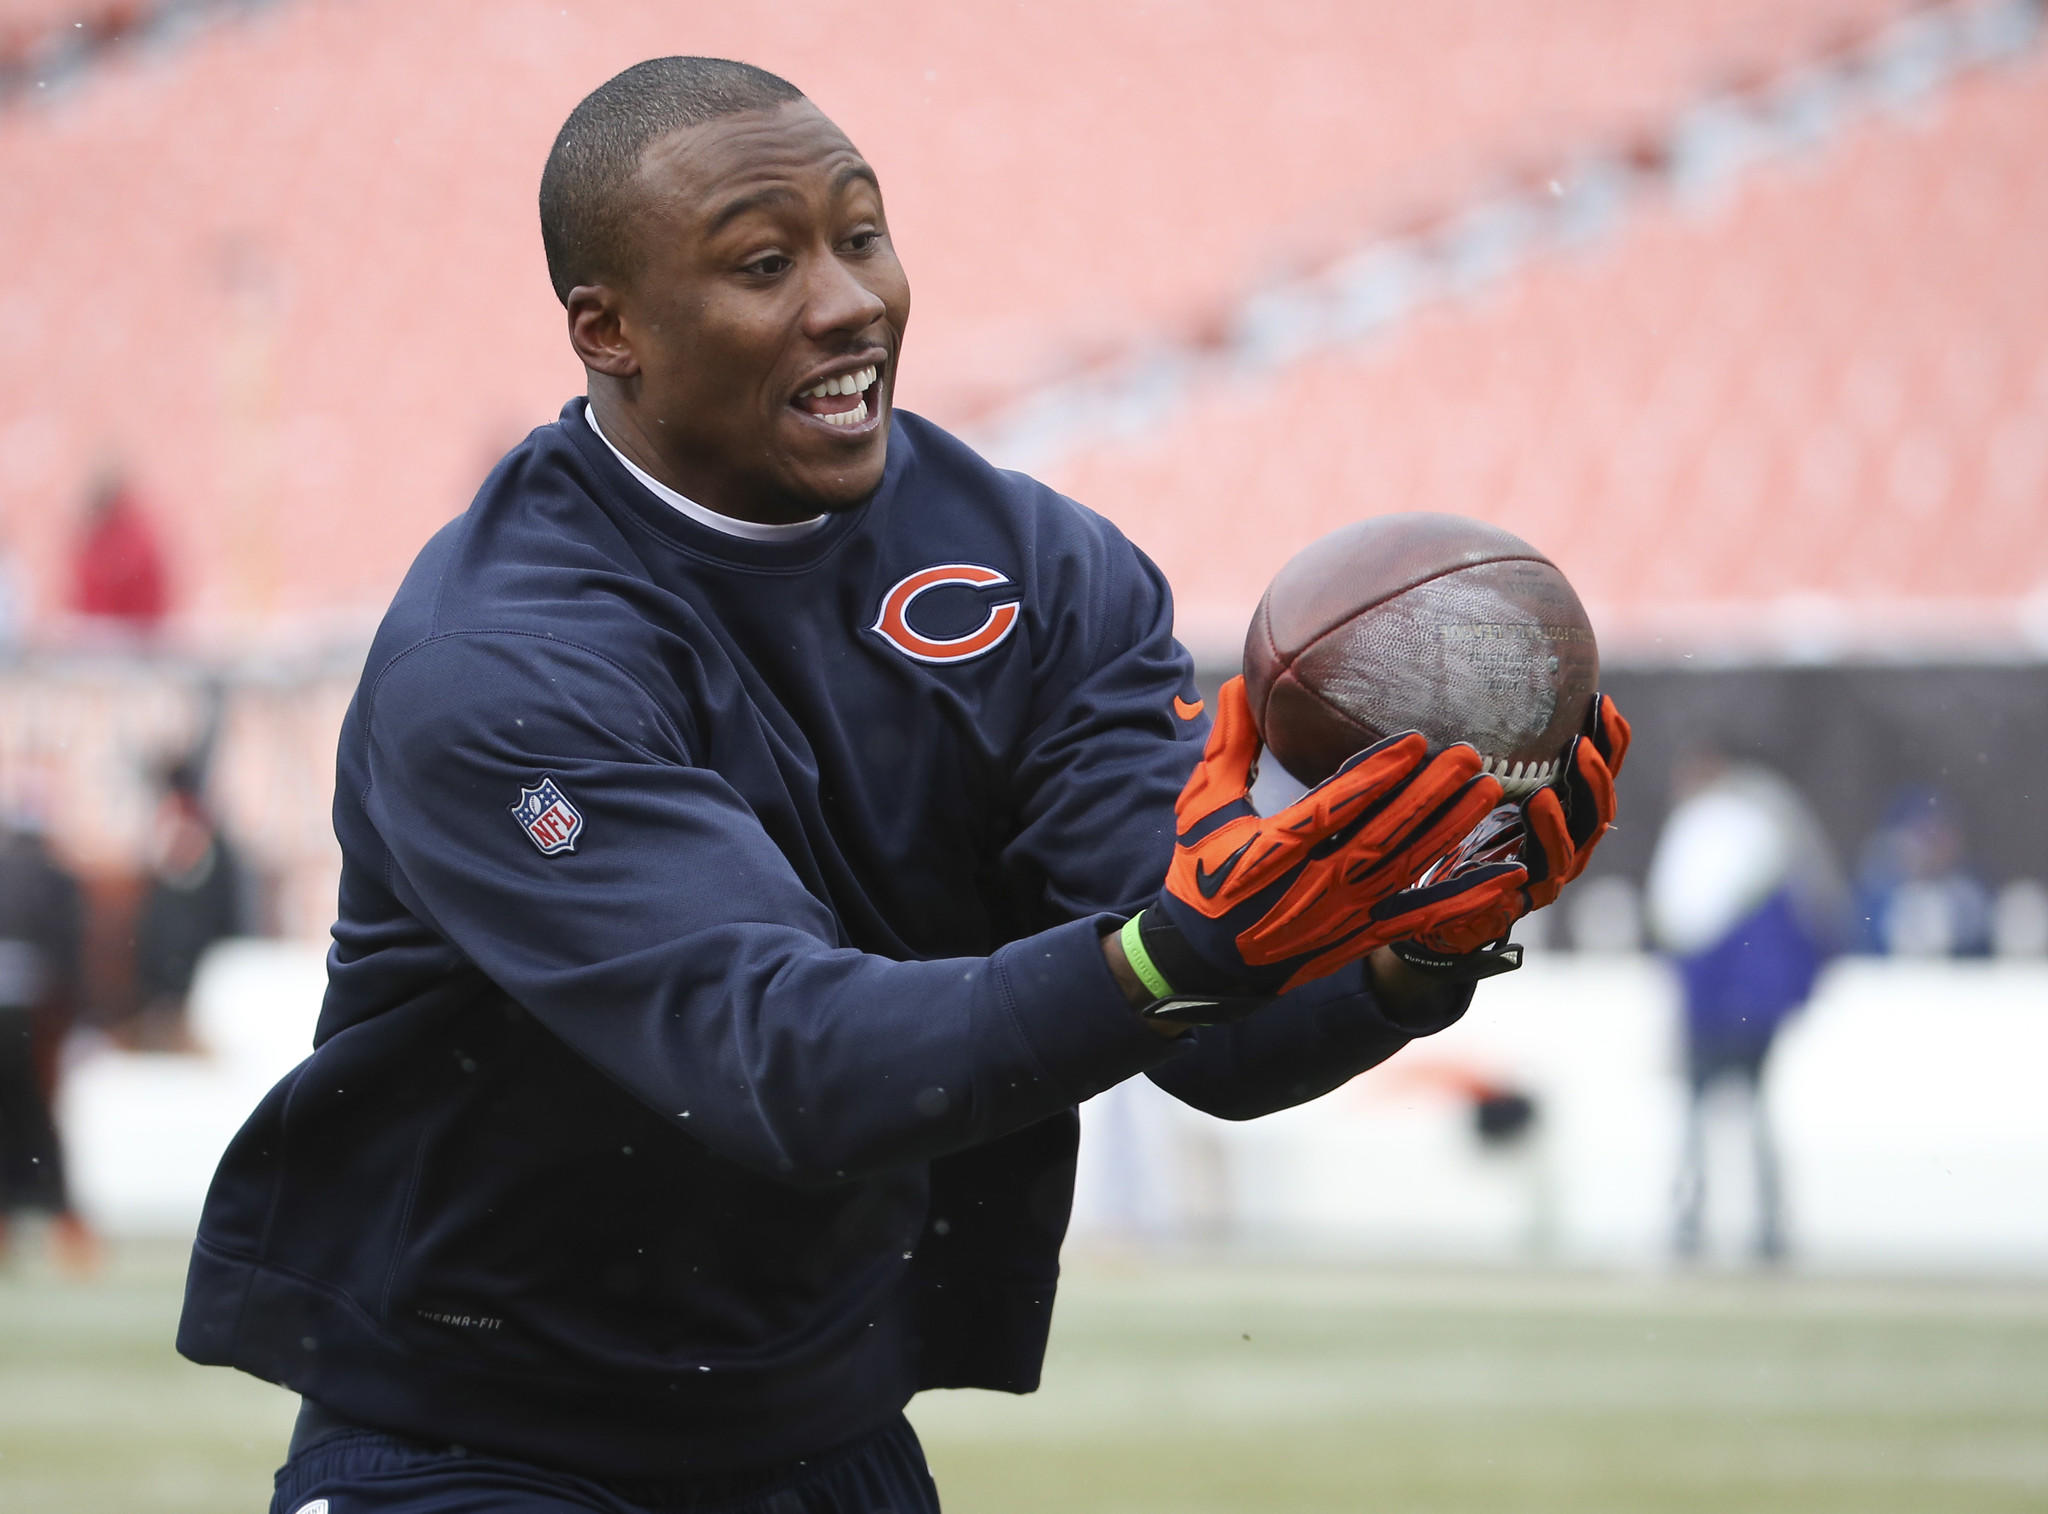 Bears wide receiver Brandon Marshall will be going back to school, in a sense, after being accepted for a Harvard business program.